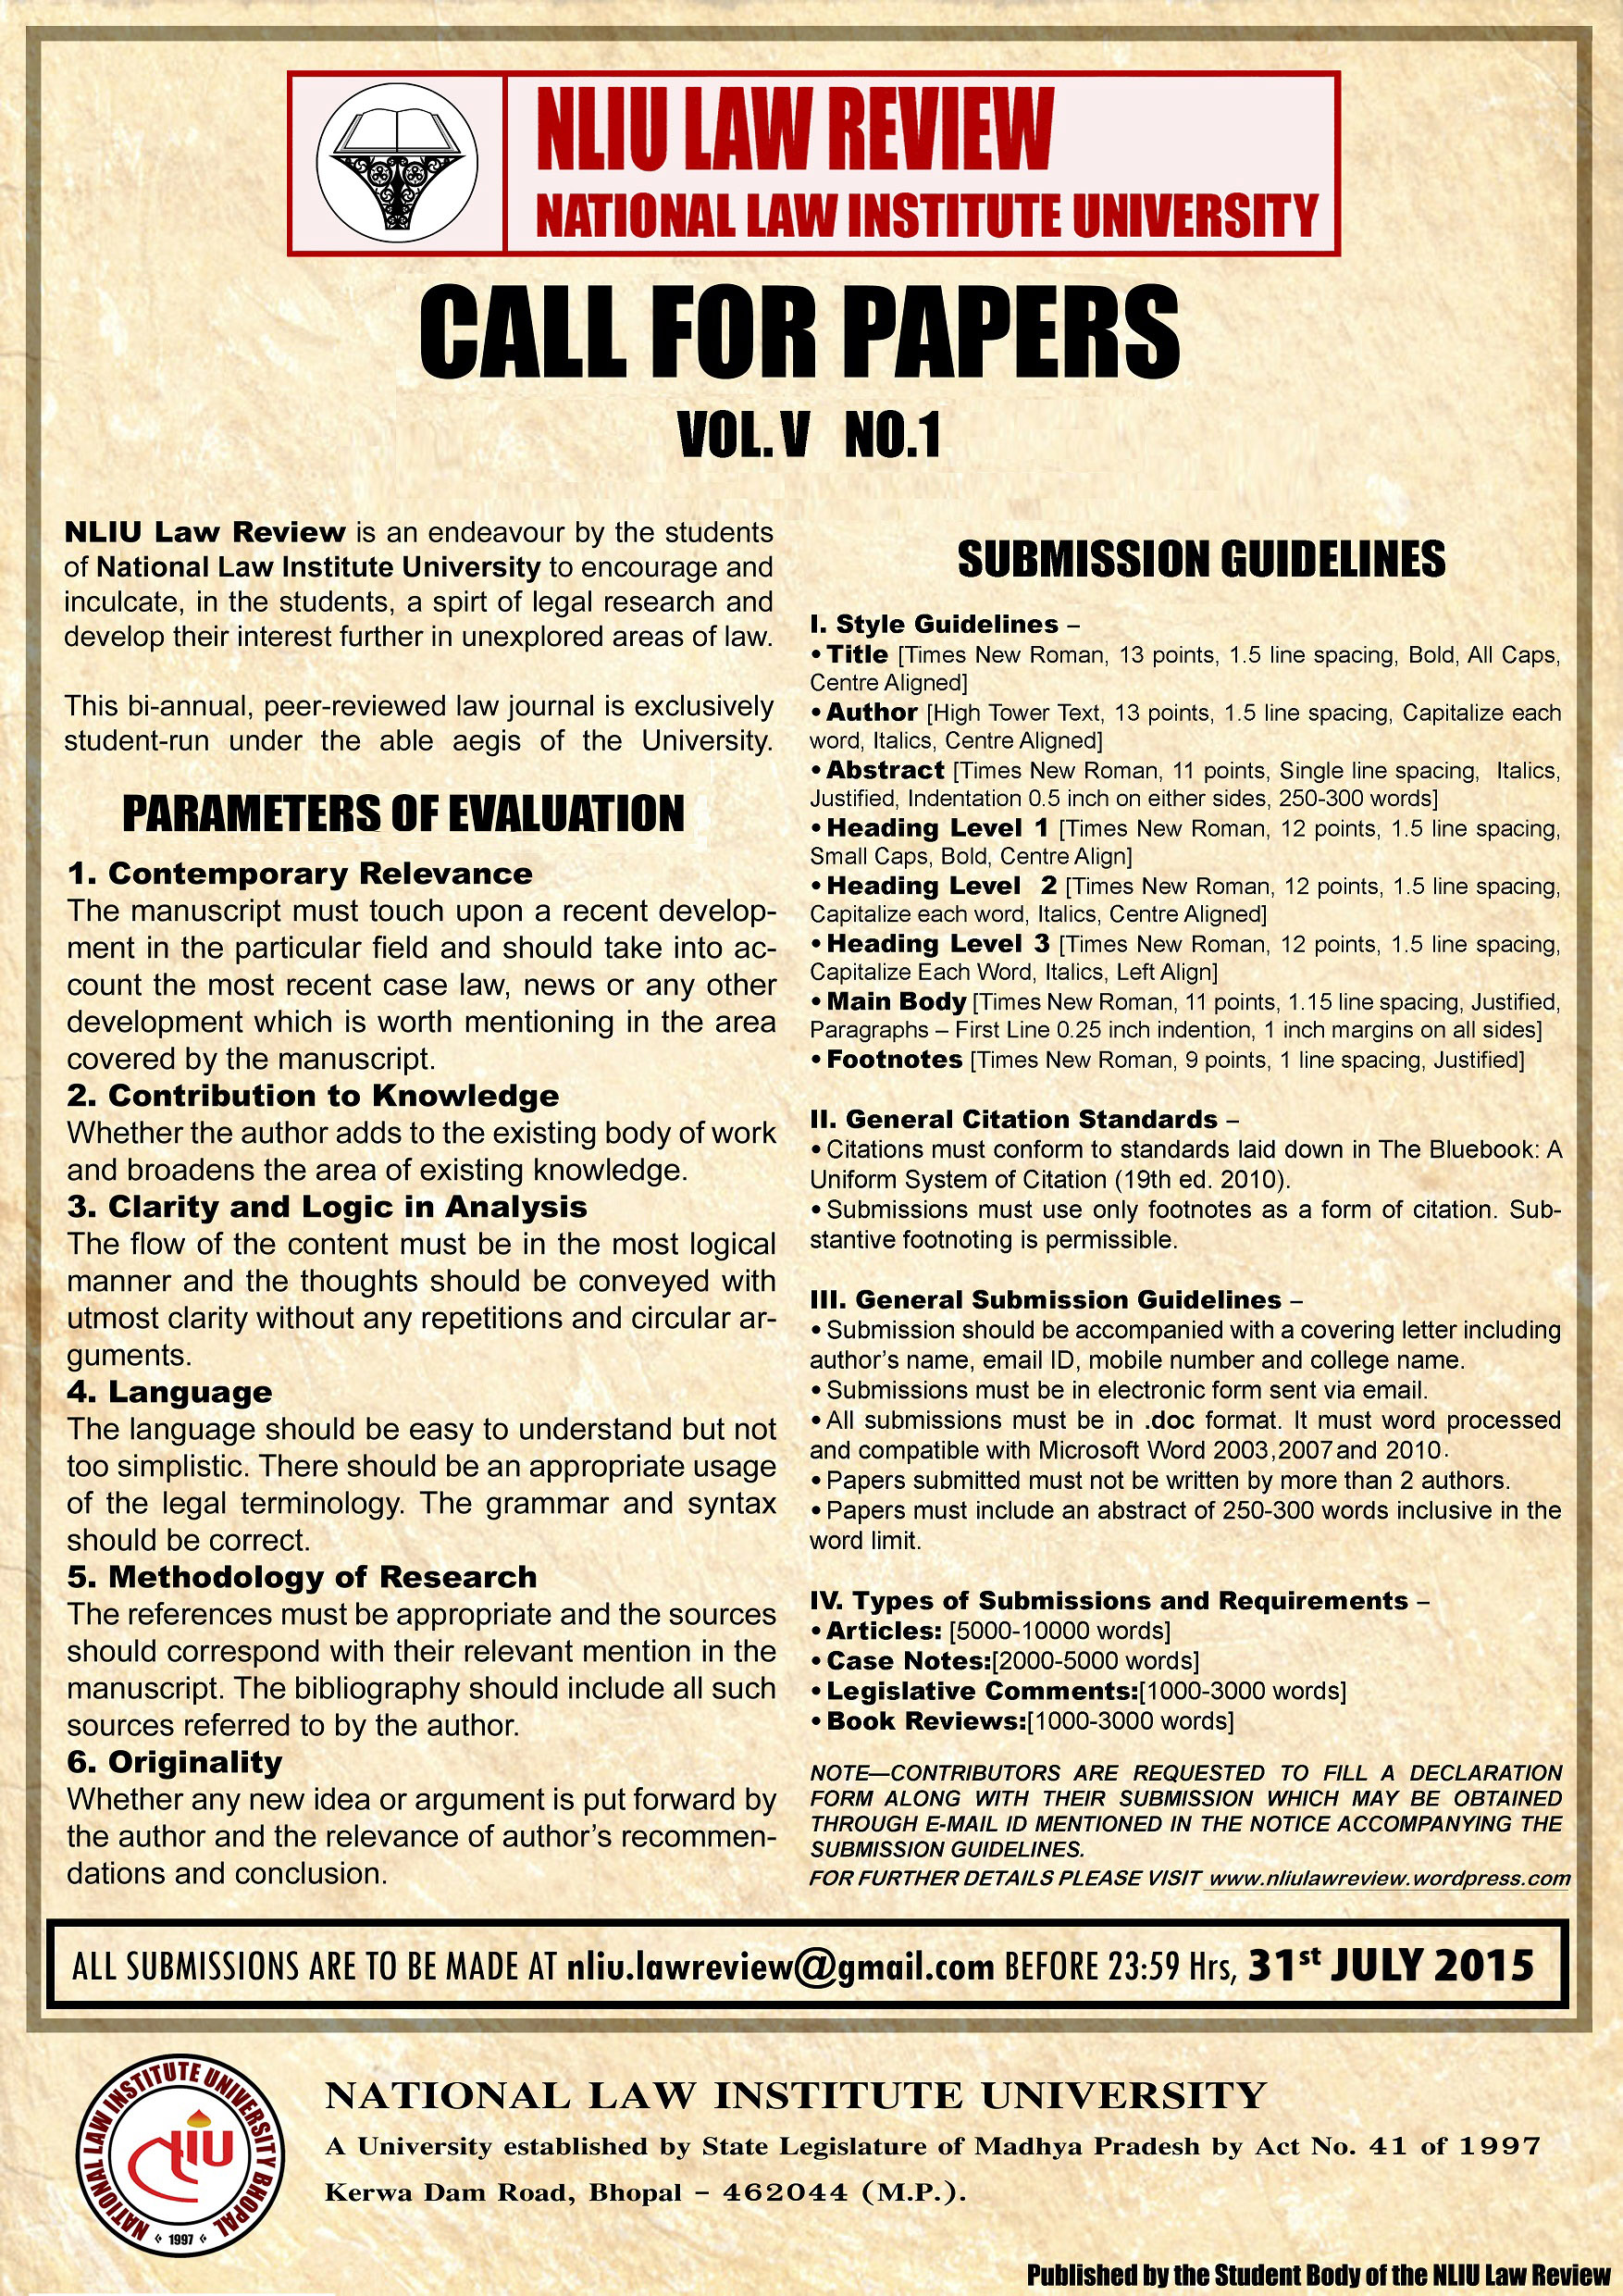 nliu law review call for papers